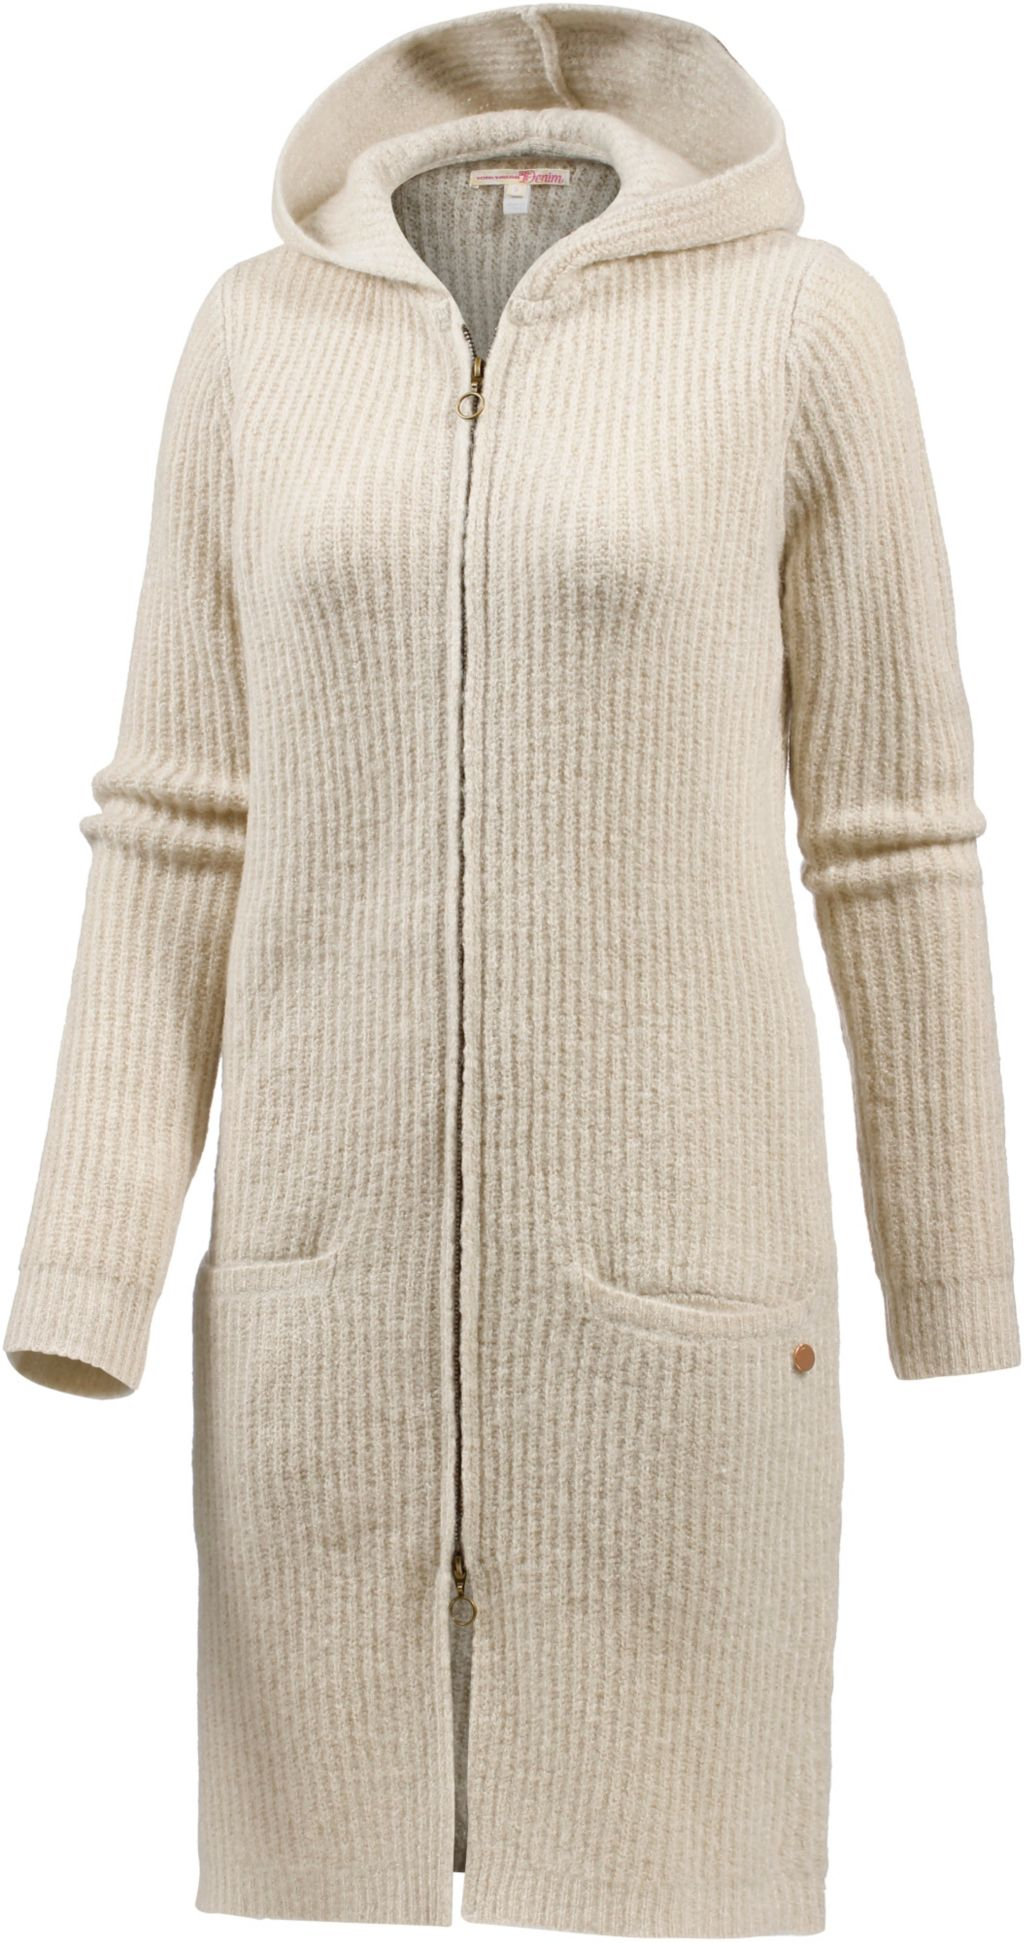 TOM TAILOR Strickmantel Damen in beige, Größe S